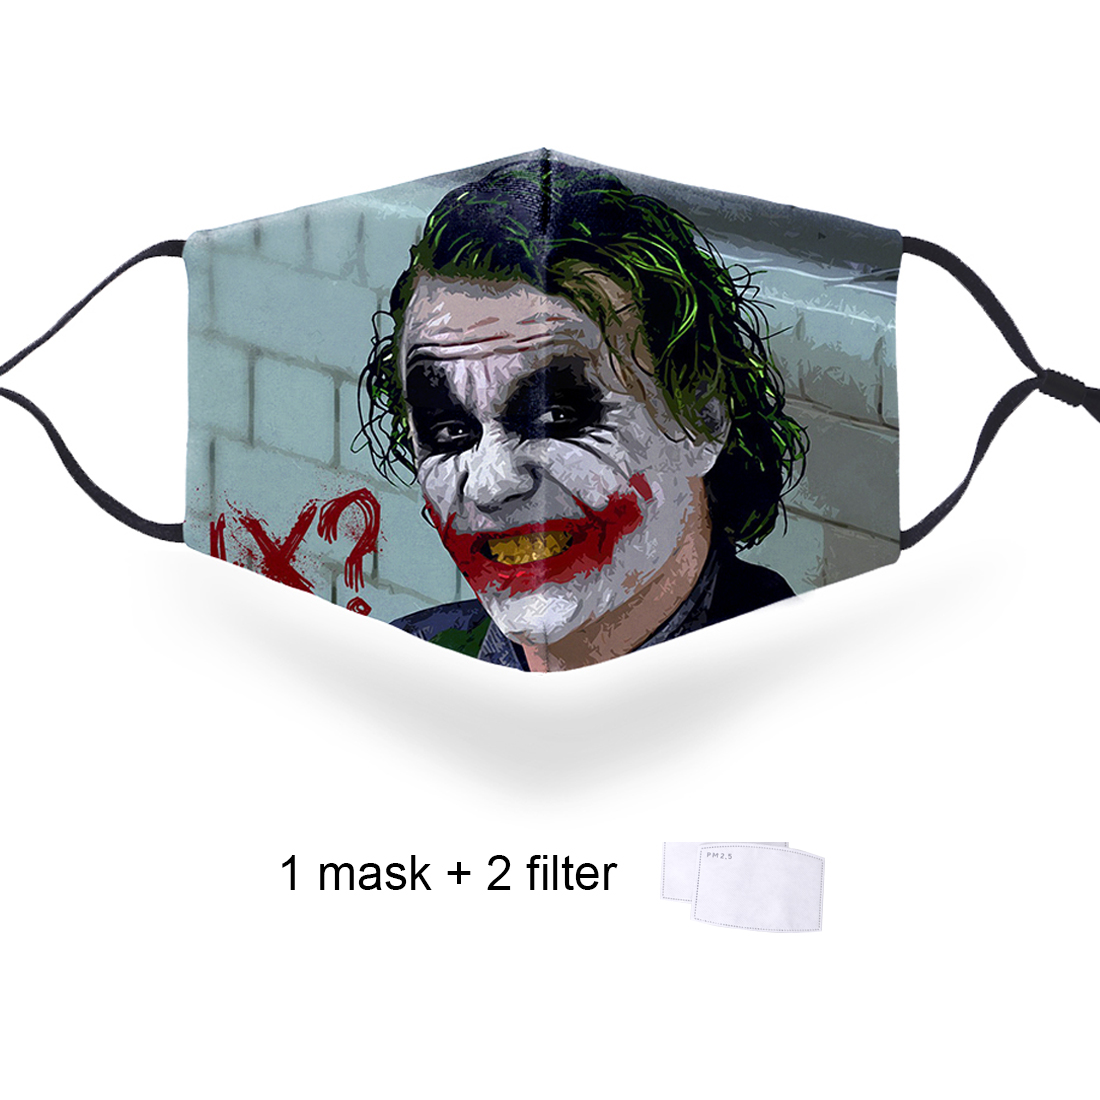 Clown Jokers Joker Cosplayer Protective PM2.5 Filter Masks Unisex Mouth-muffle Bacteria Proof Flu Masks High Quality Soft Masks